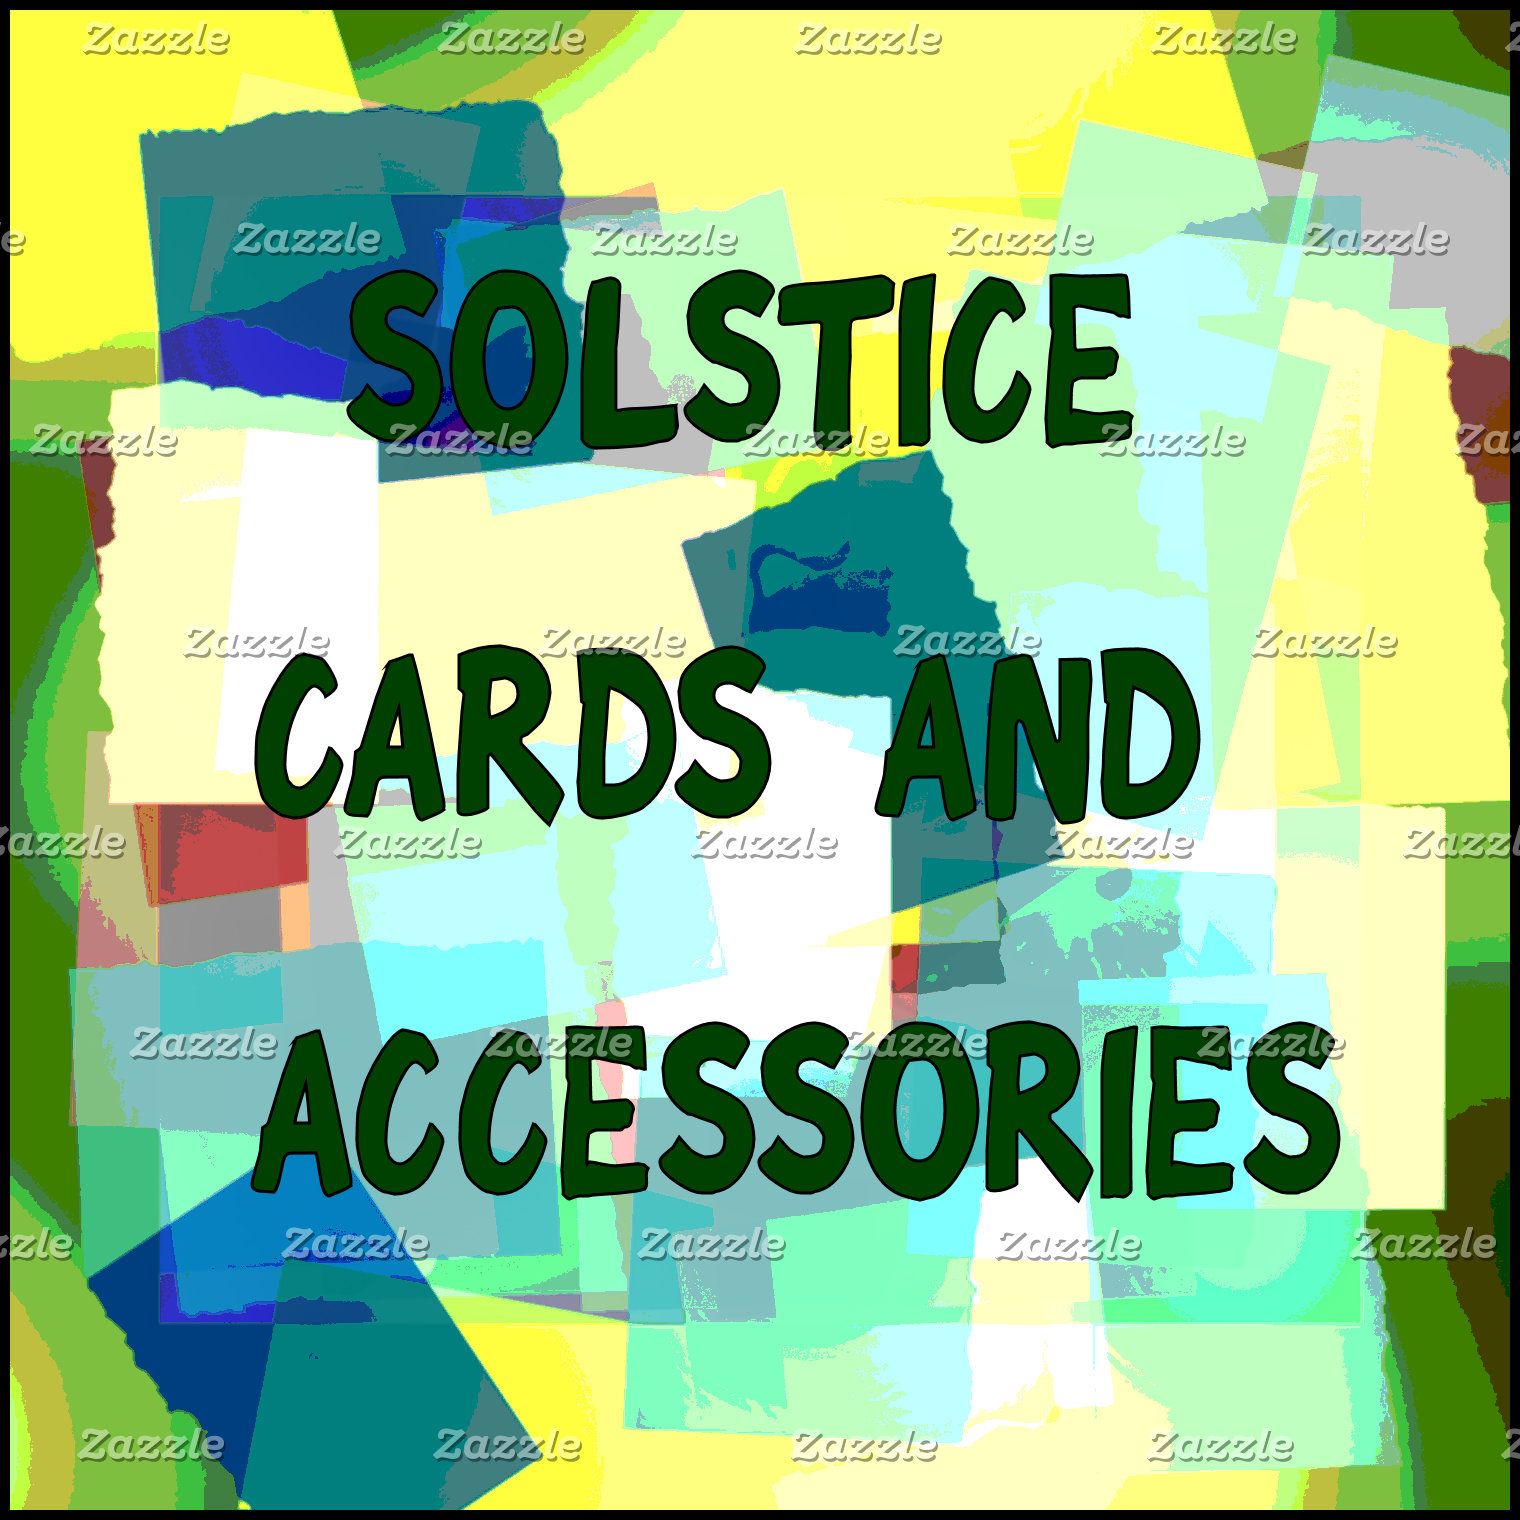 WINTER SOLSTICE CARDS AND ACCESSORIES